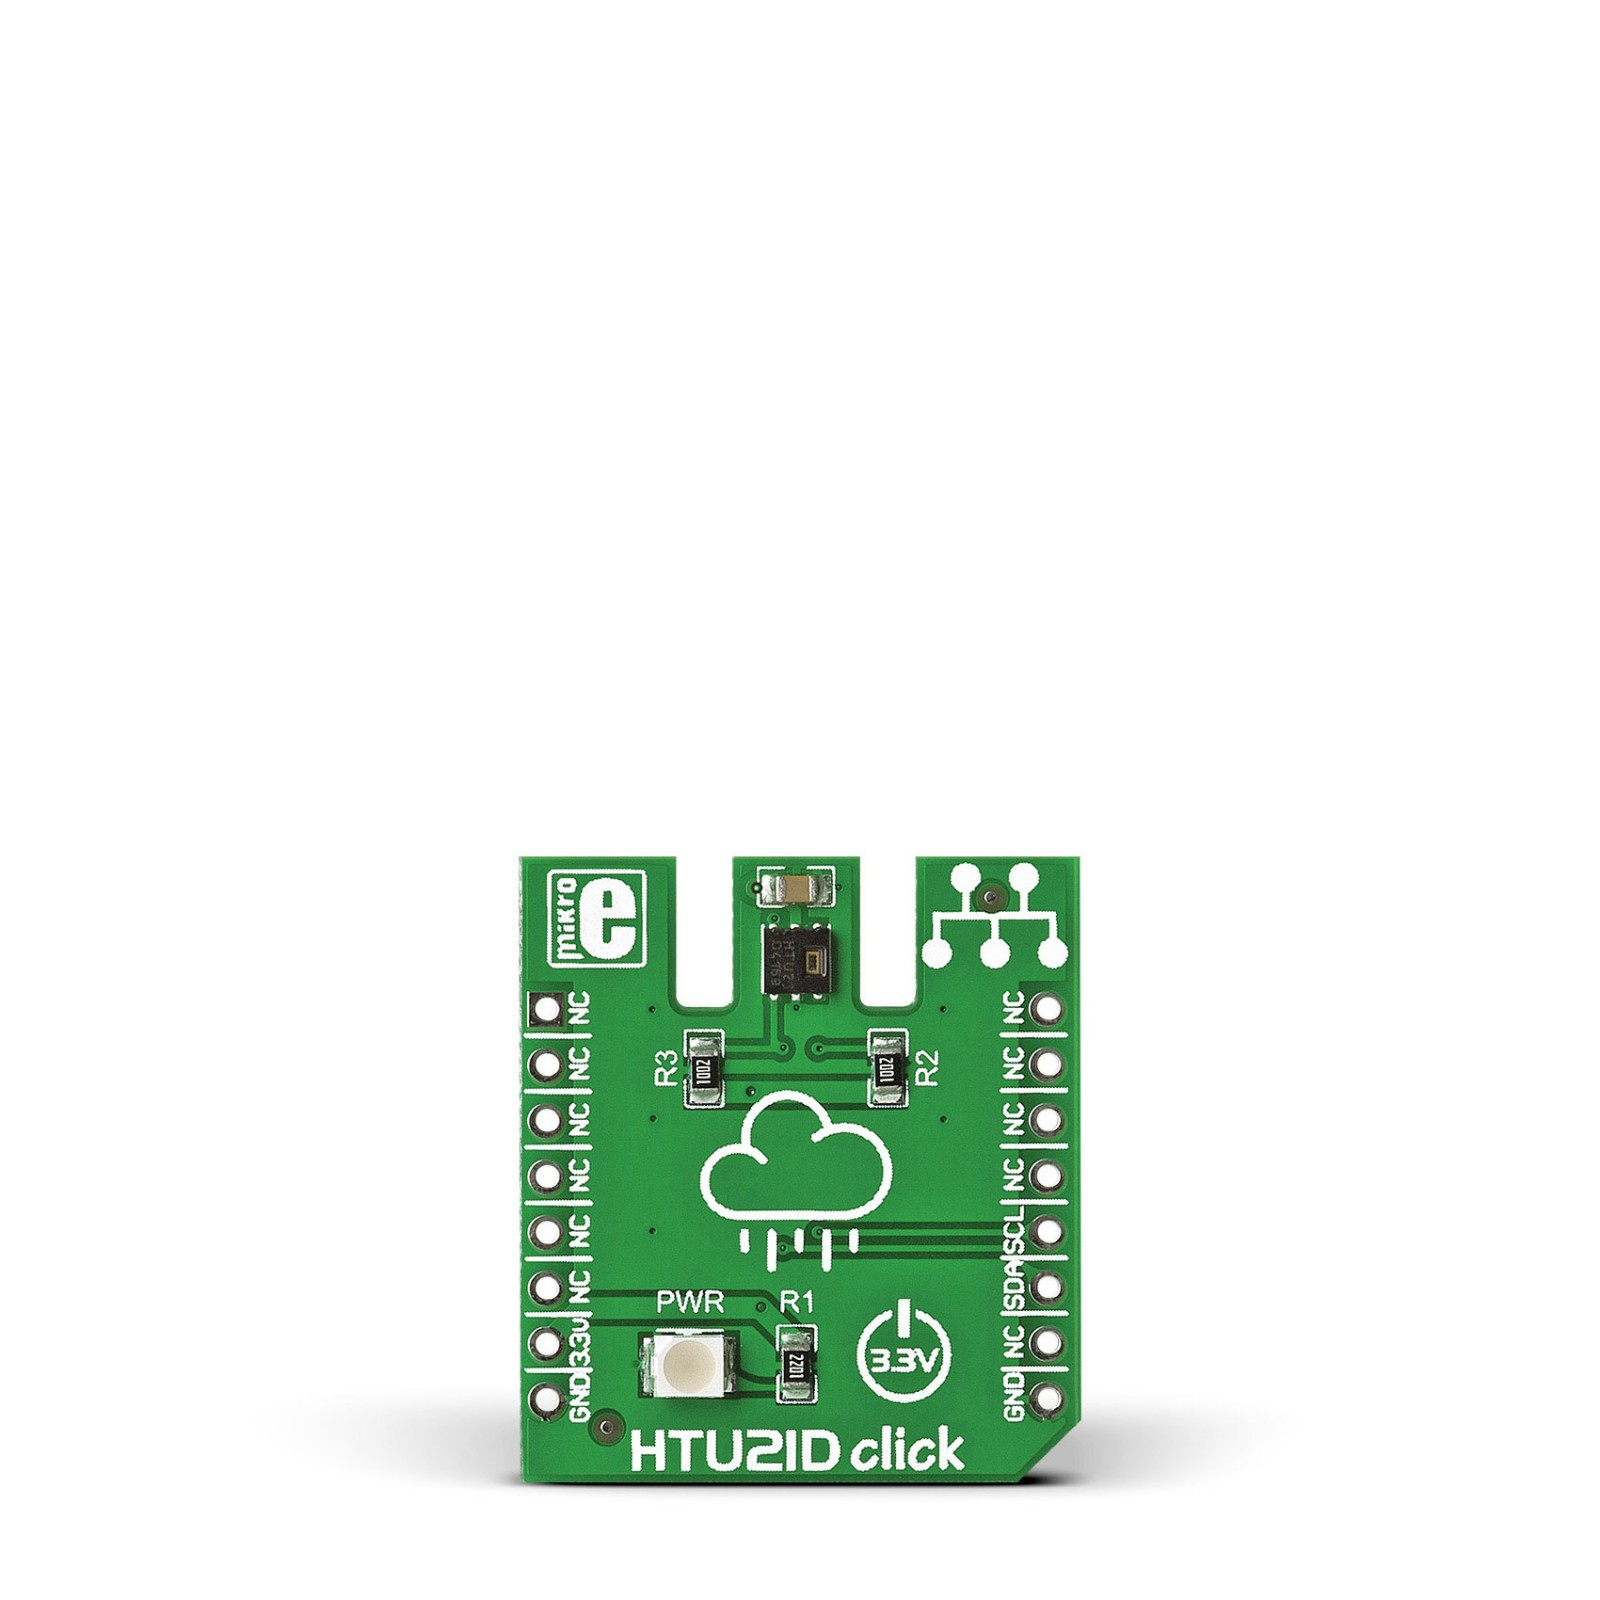 Htu21d Click Carries Relative Humidity Sensor With Temperature Output Copyright Of This Circuit Belongs To Smart Kit Electronics In Mgctlbxnmzp Mgctlbxv5112 Mgctlbxlc Mgctlbxpprestashop